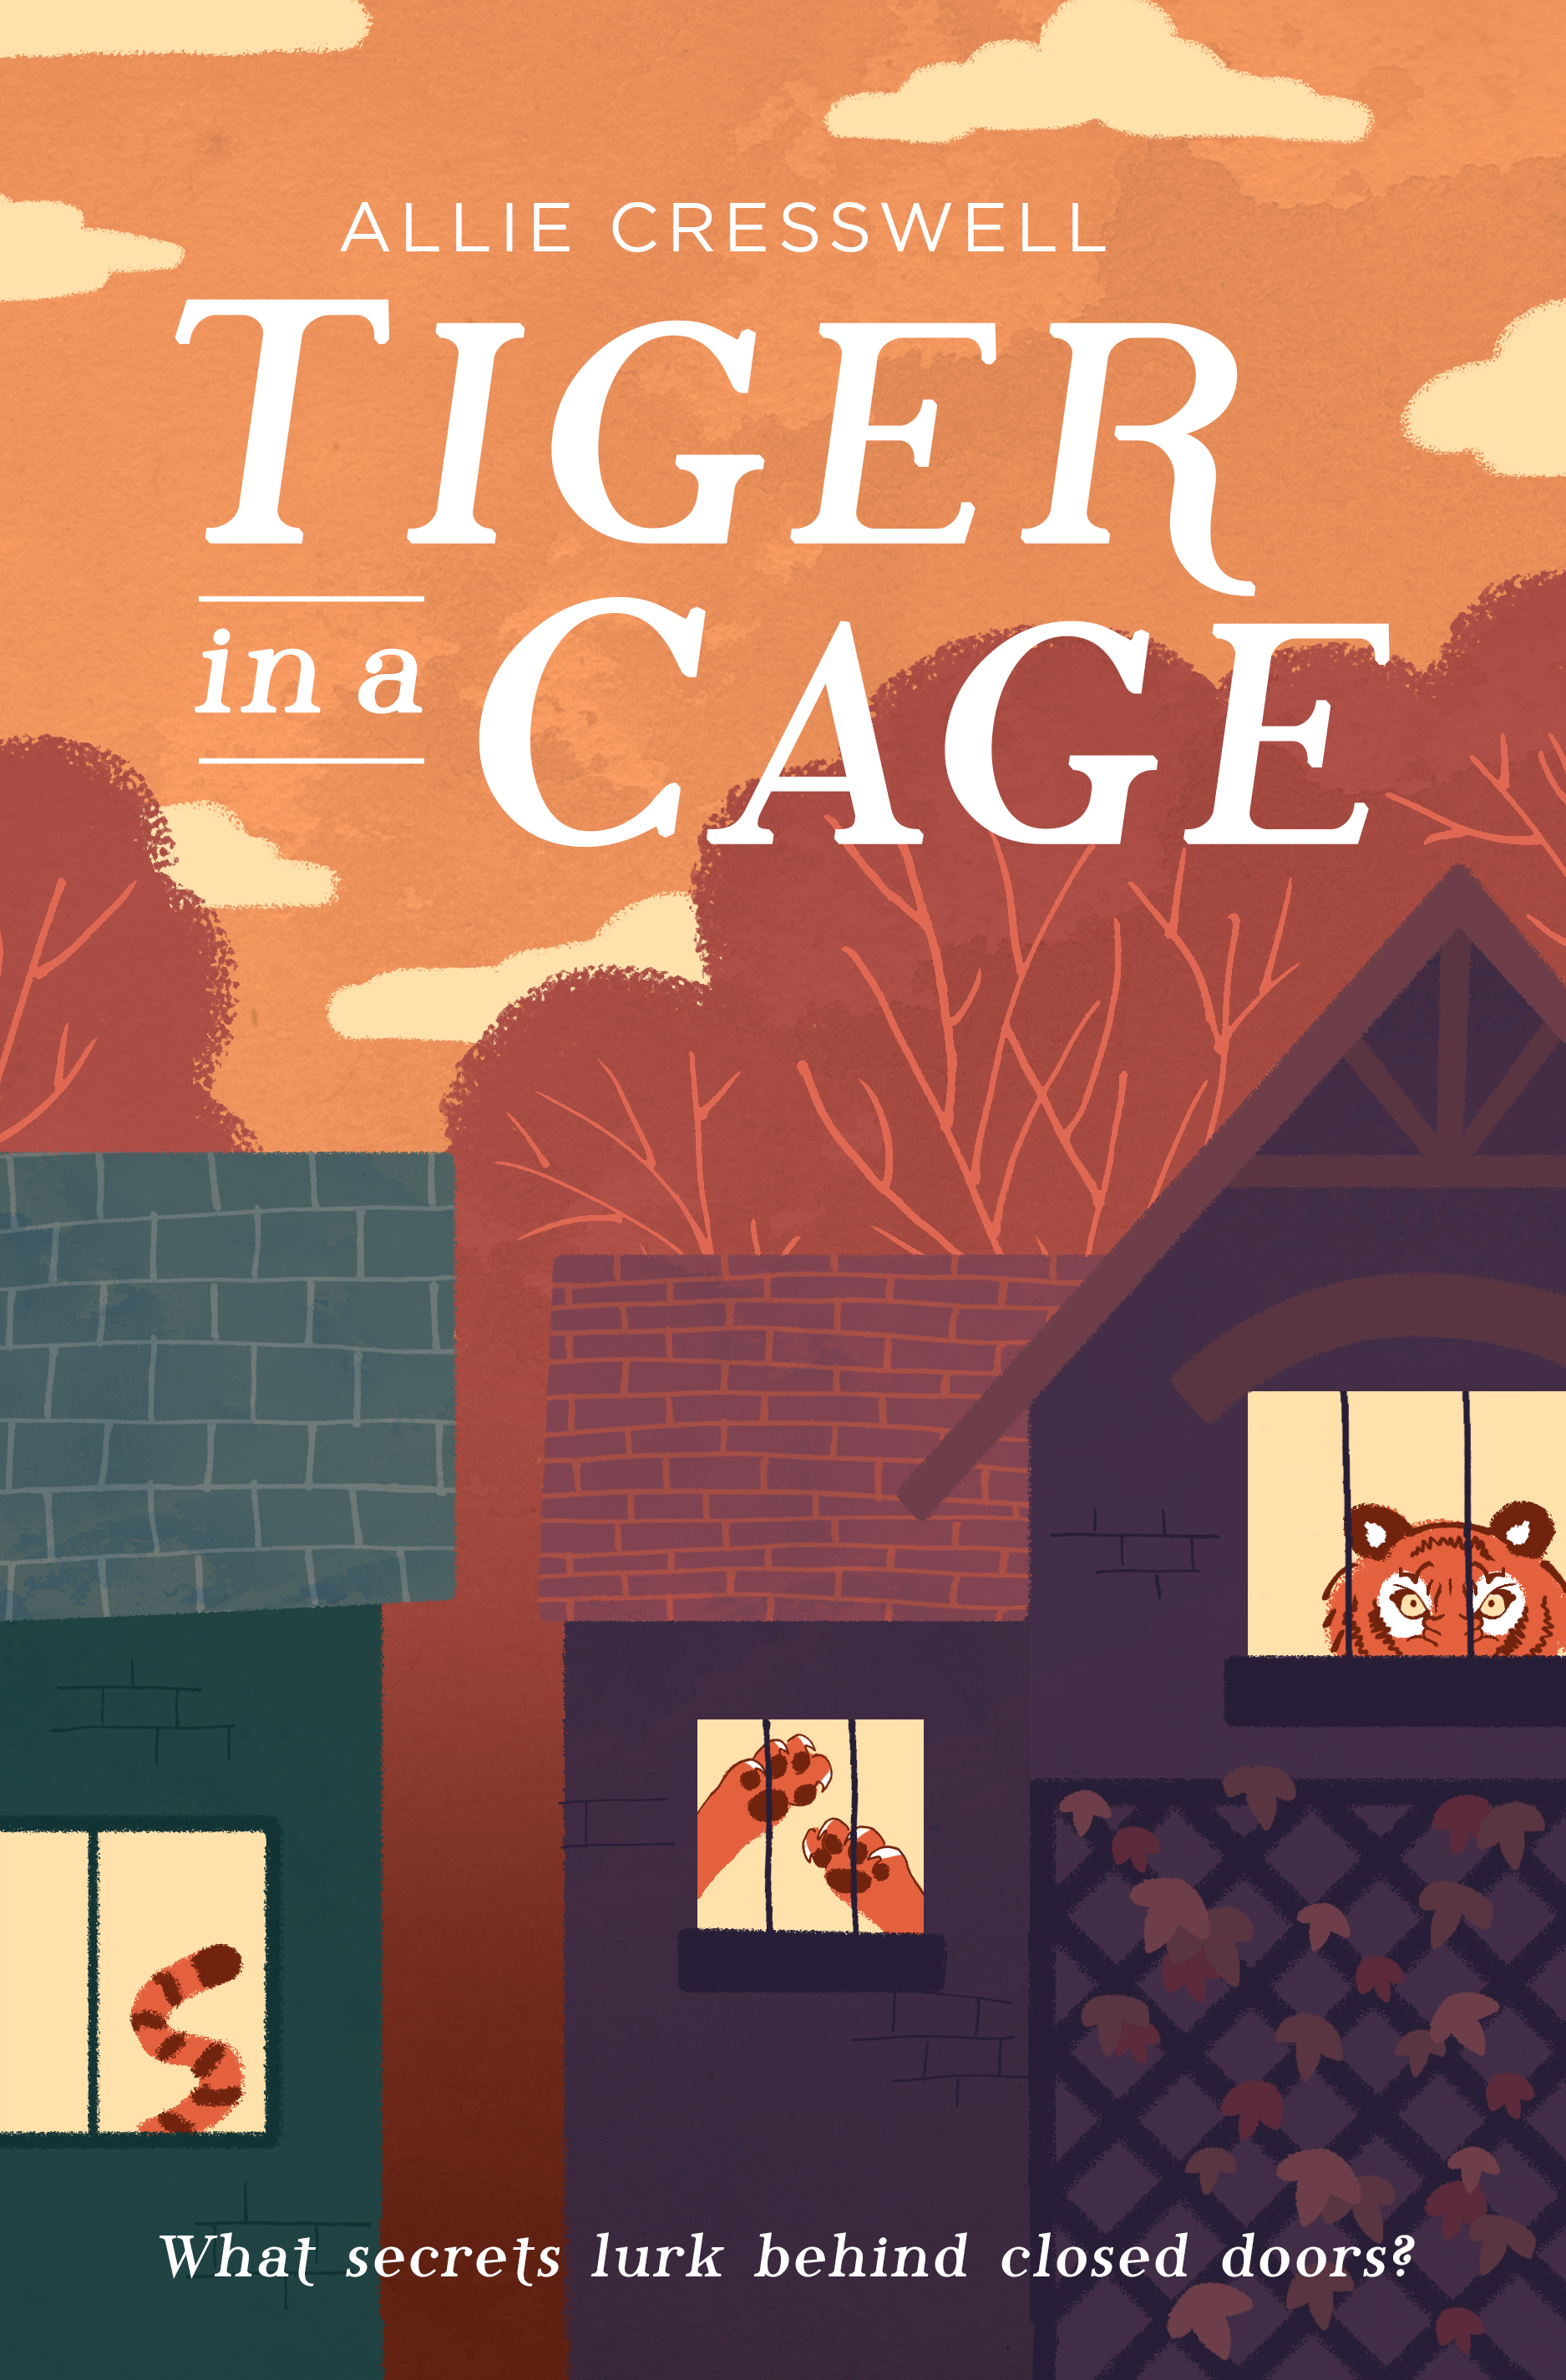 Tiger in a Cage  by Allie Cresswell - new cover for 2018